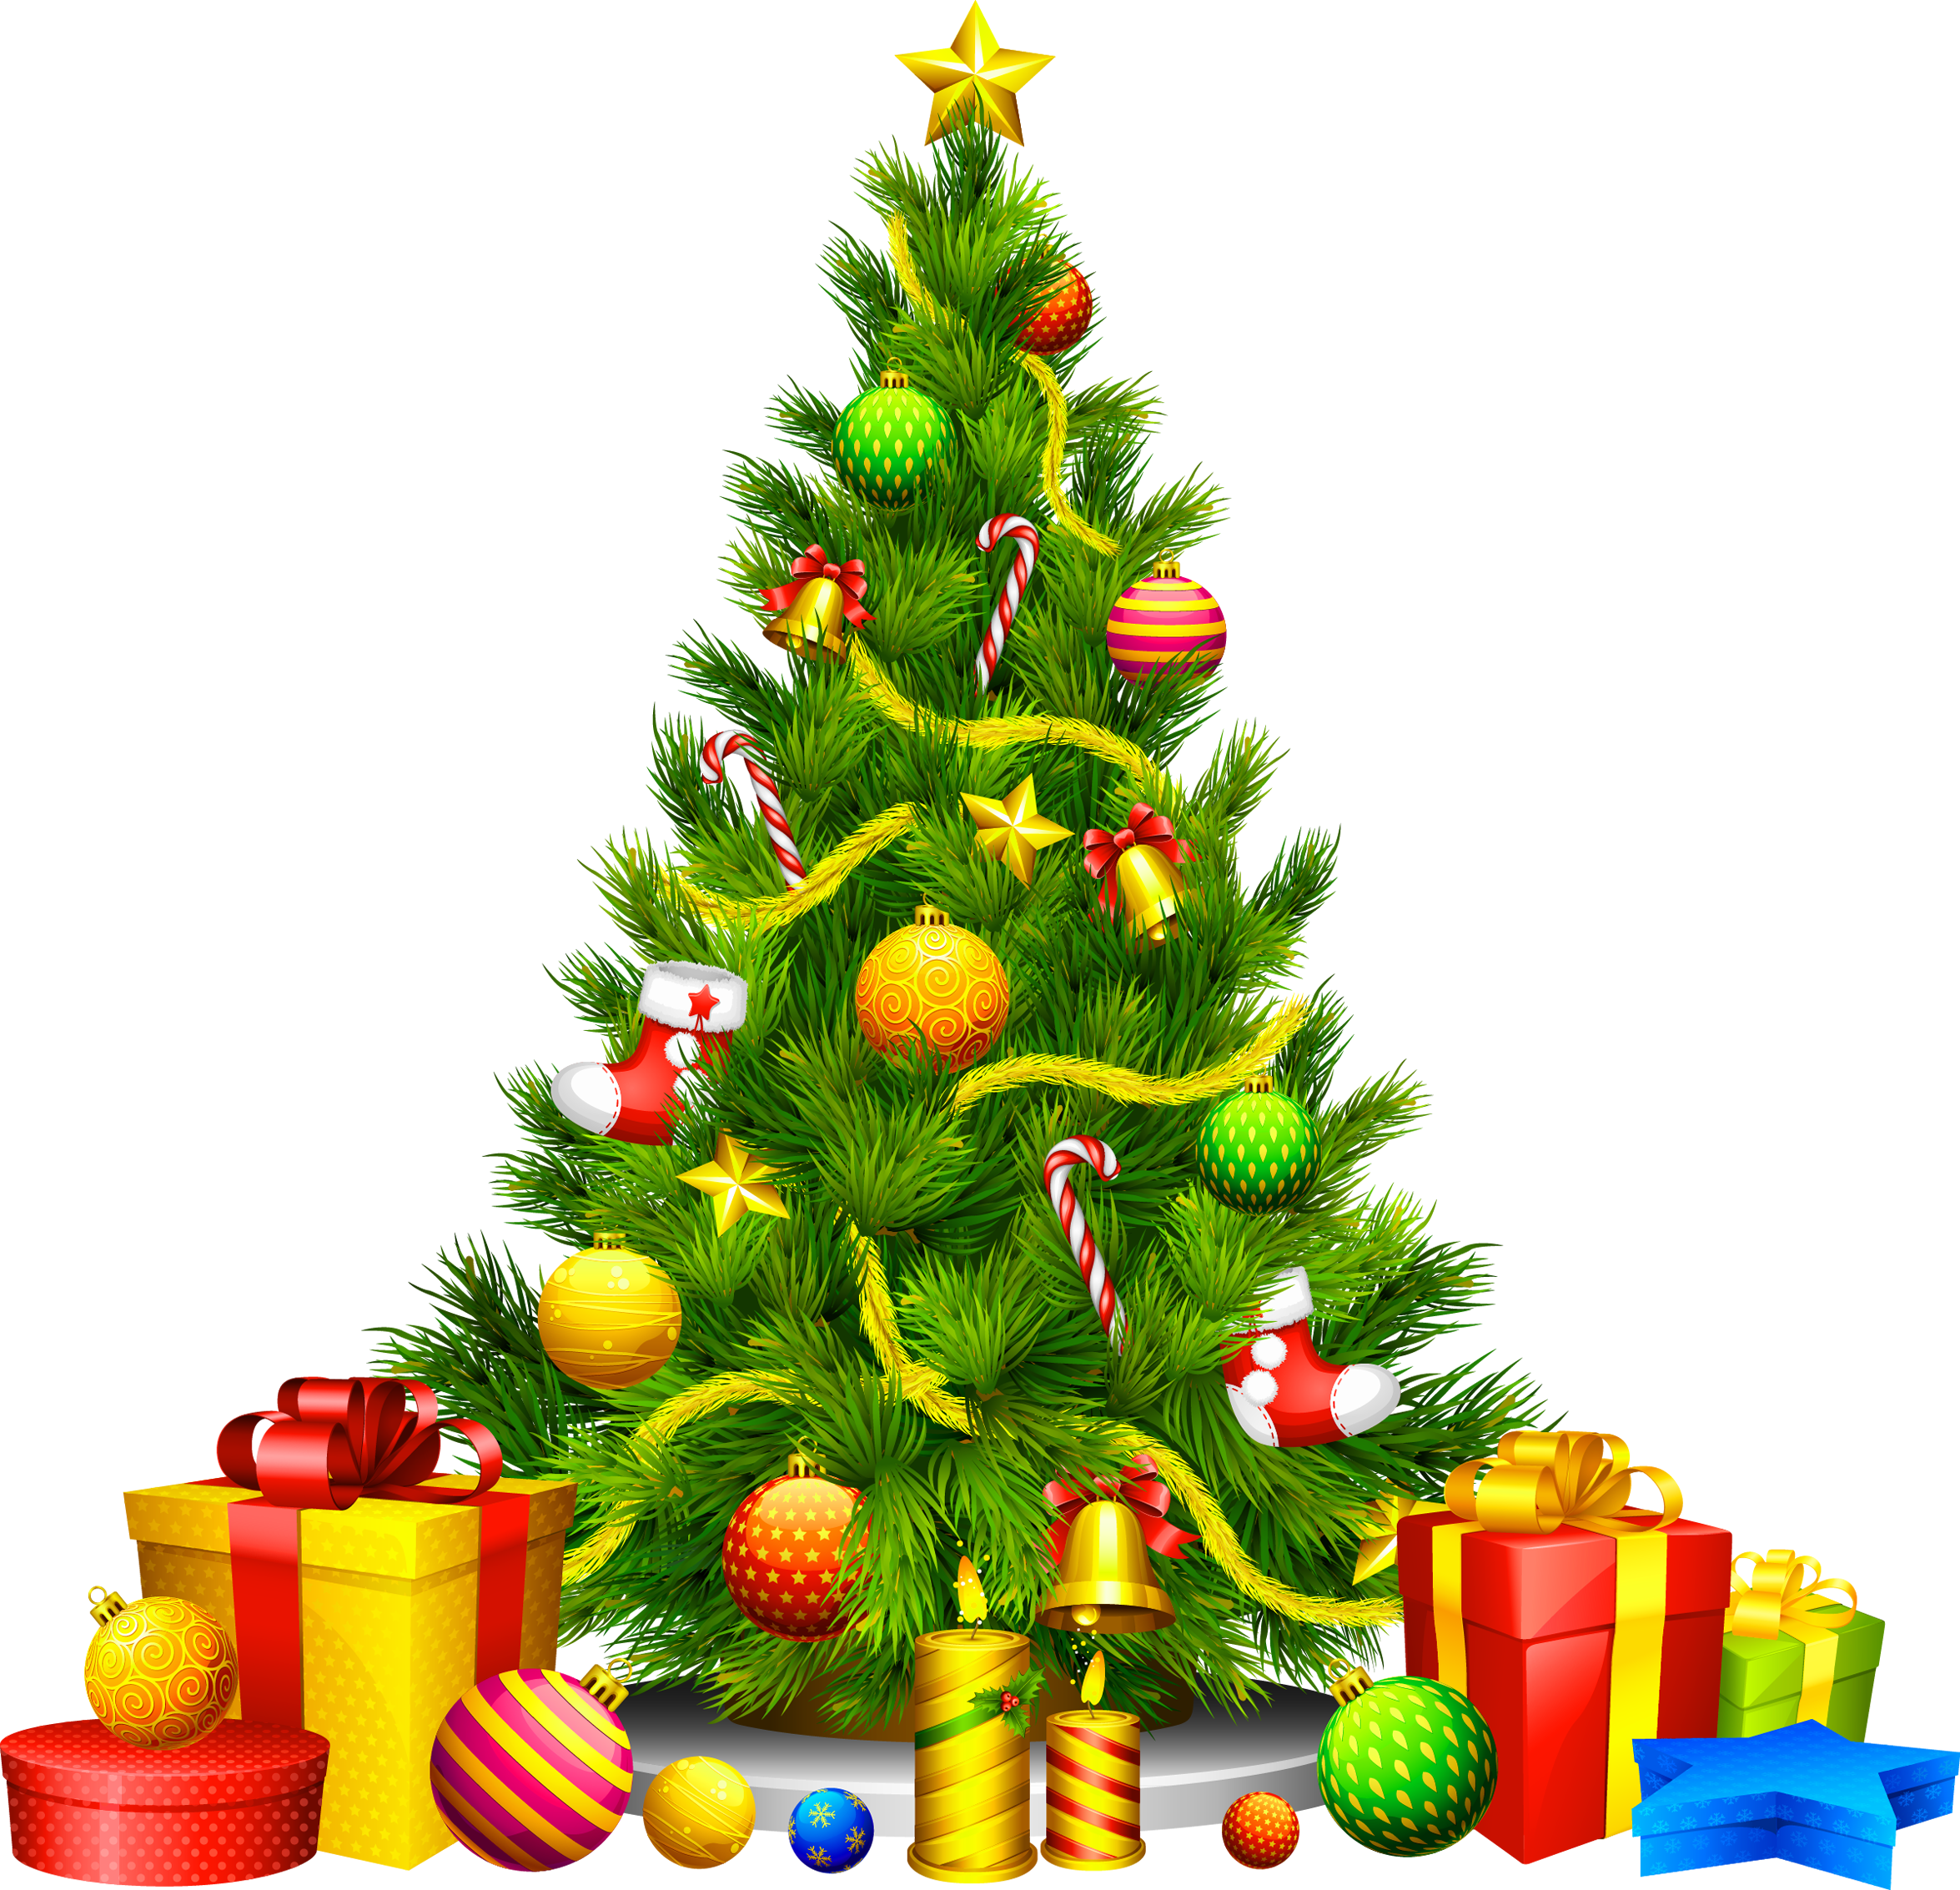 Christmas Tree With Presents Clipart & Christmas Tree With.